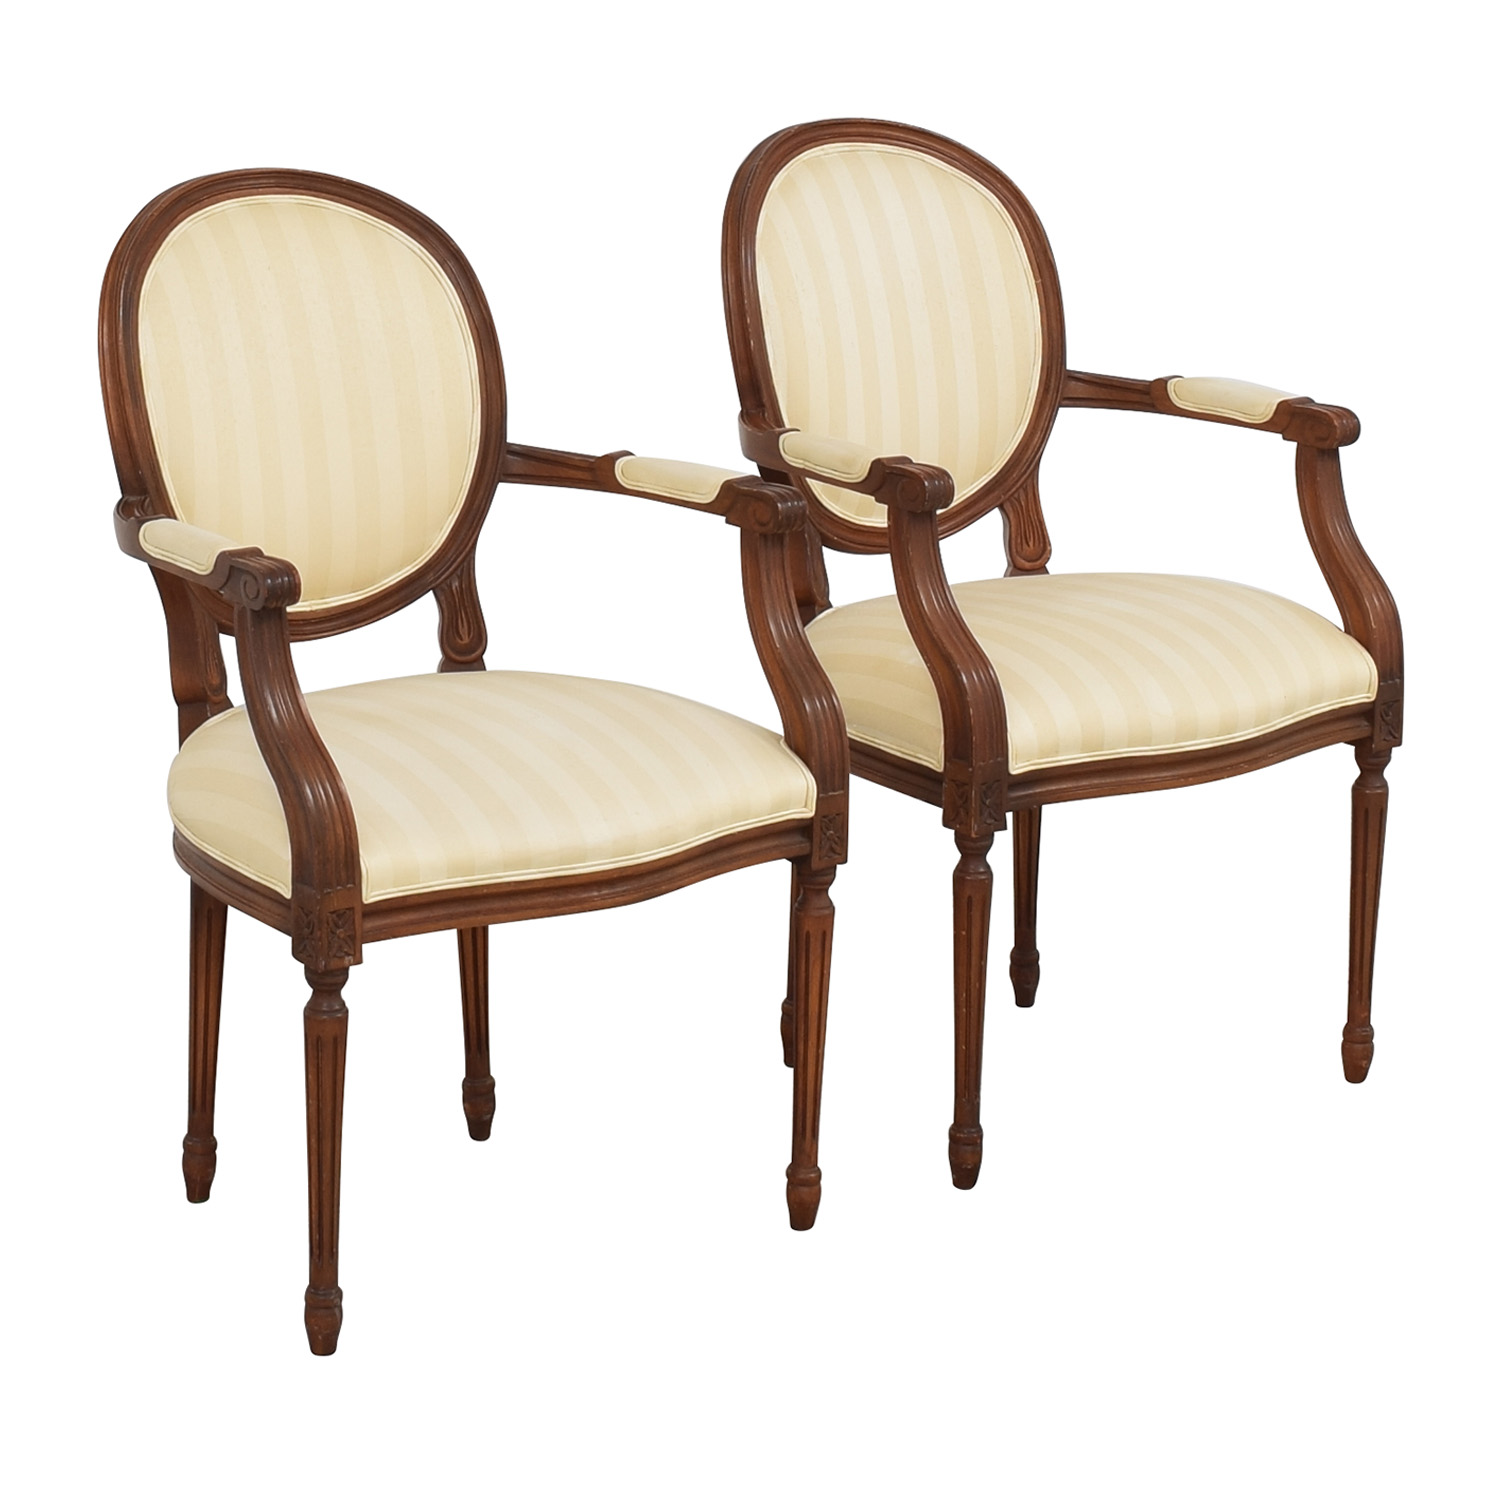 Louis XVI Style Dining Chairs for sale